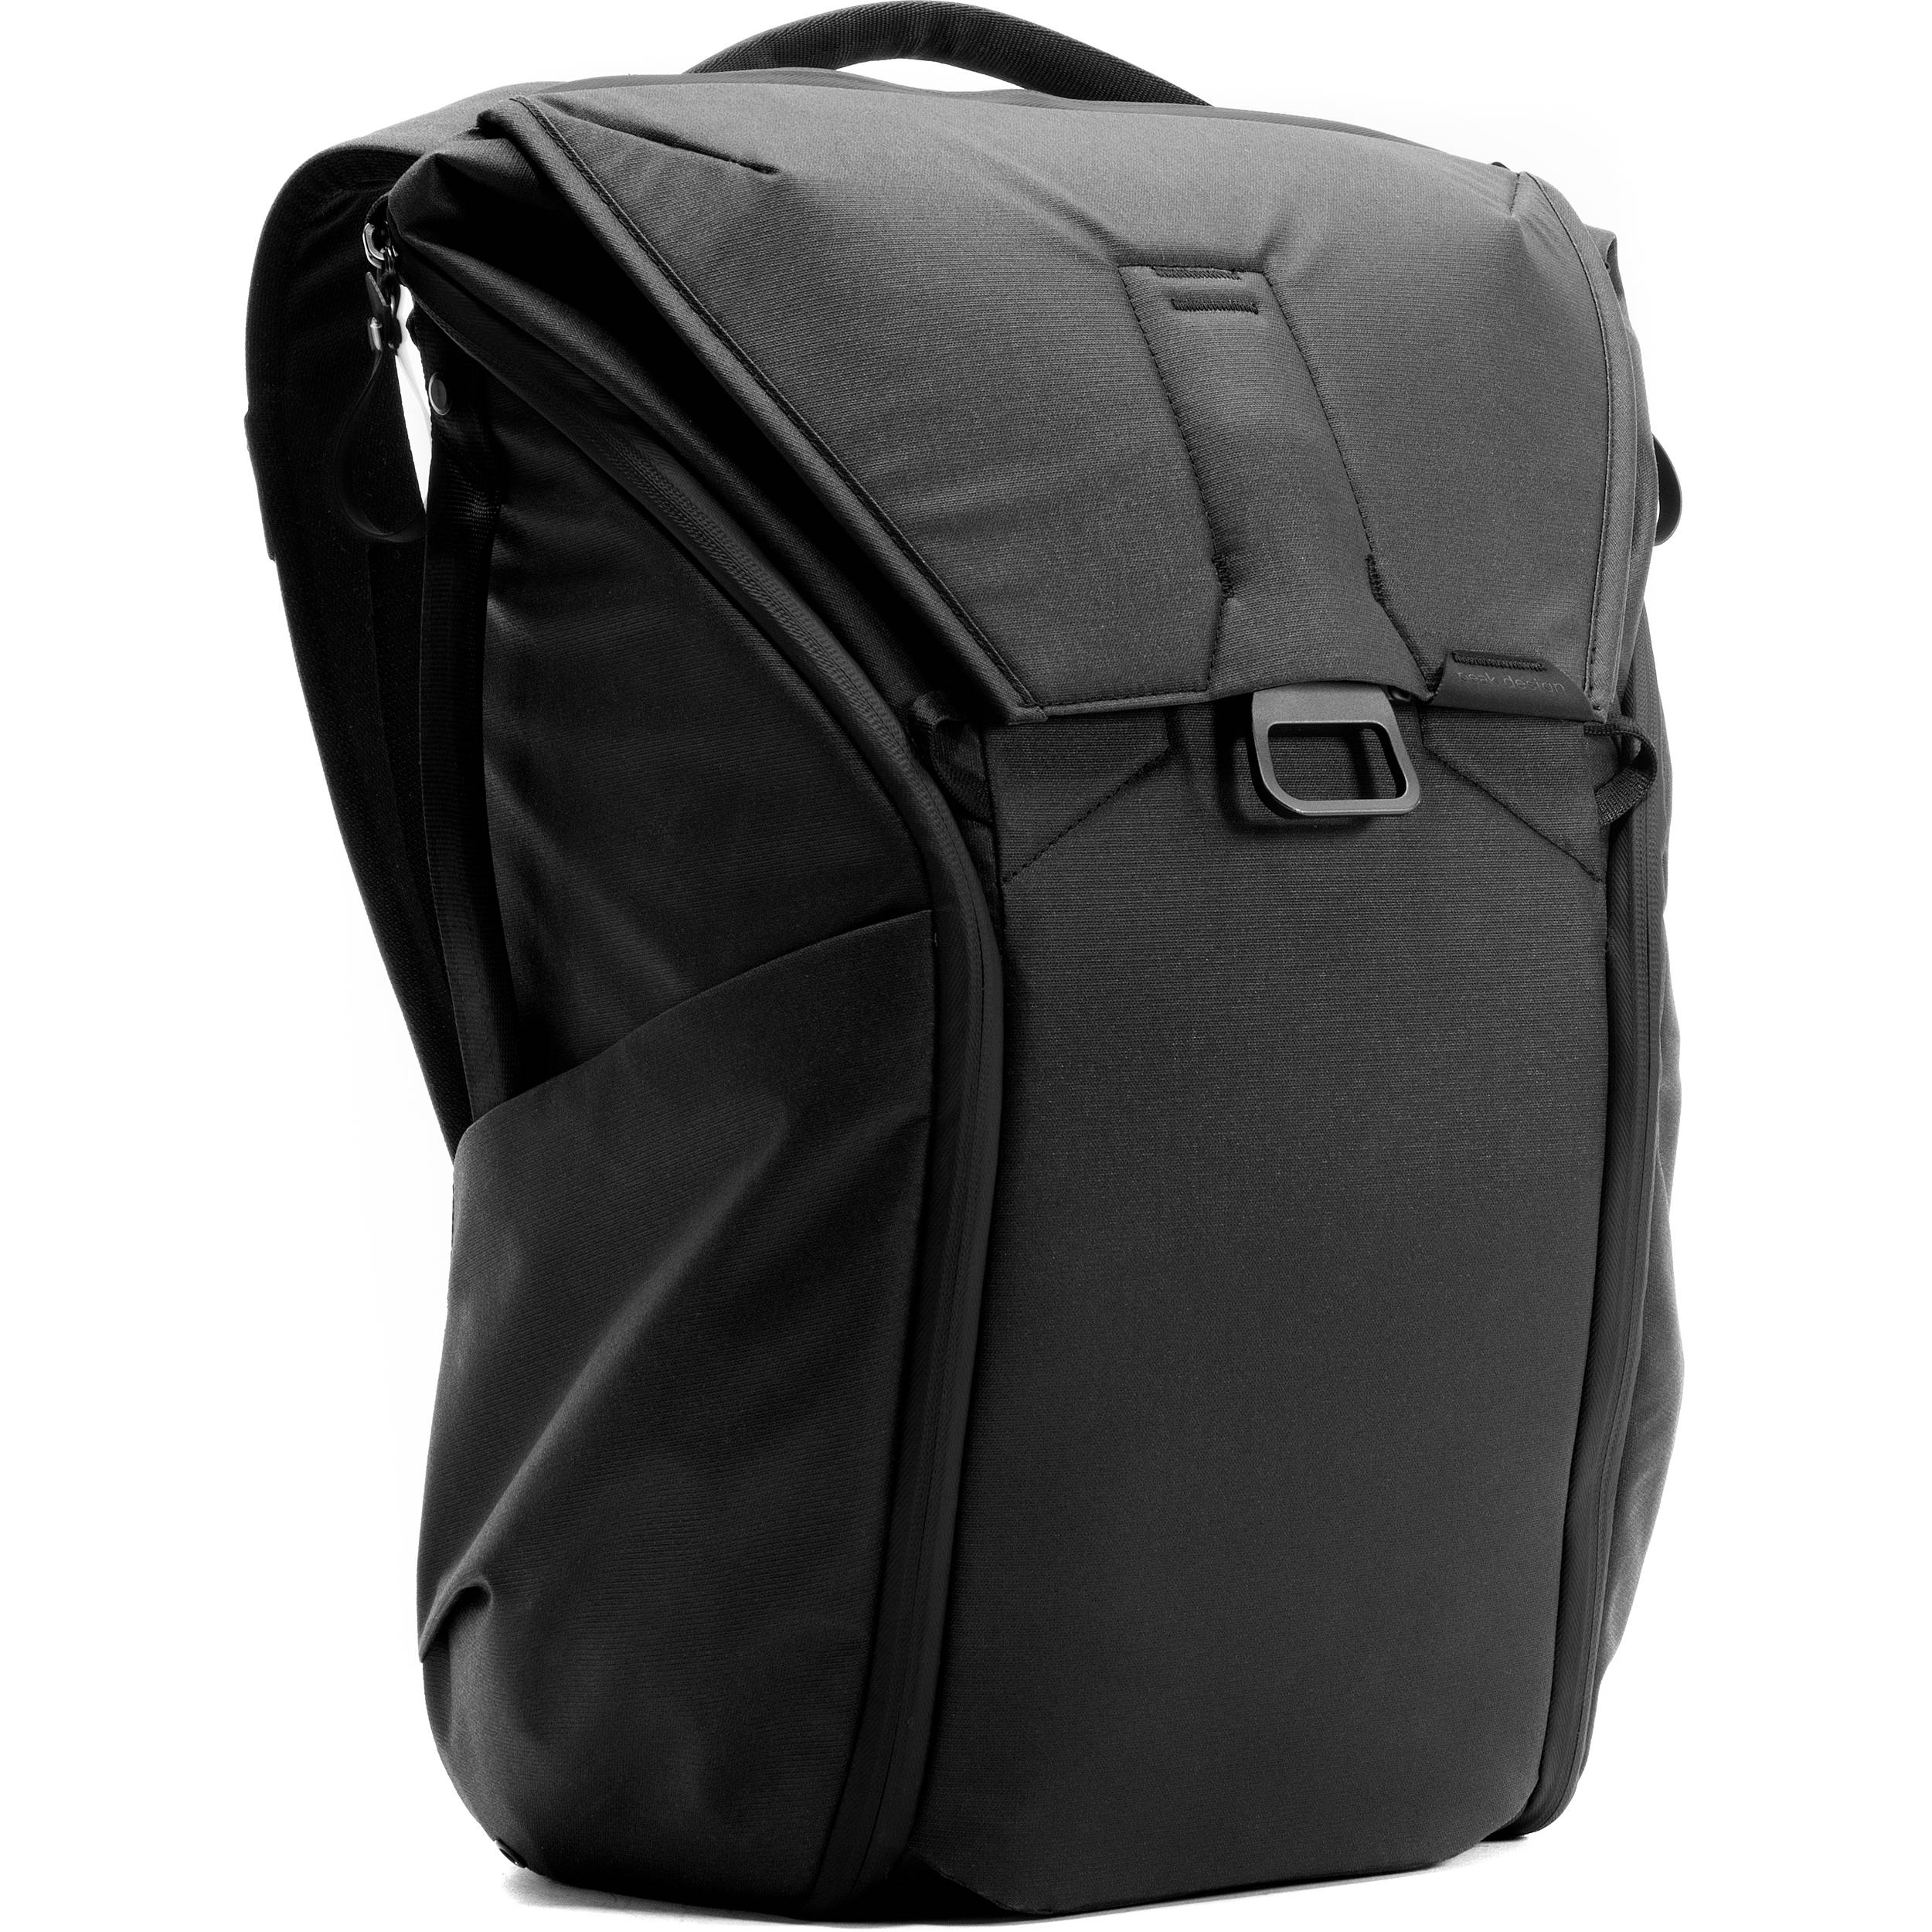 00625f29ce4 Peak Design Everyday Backpack (20L, Black) BB-20-BK-1 B&H Photo